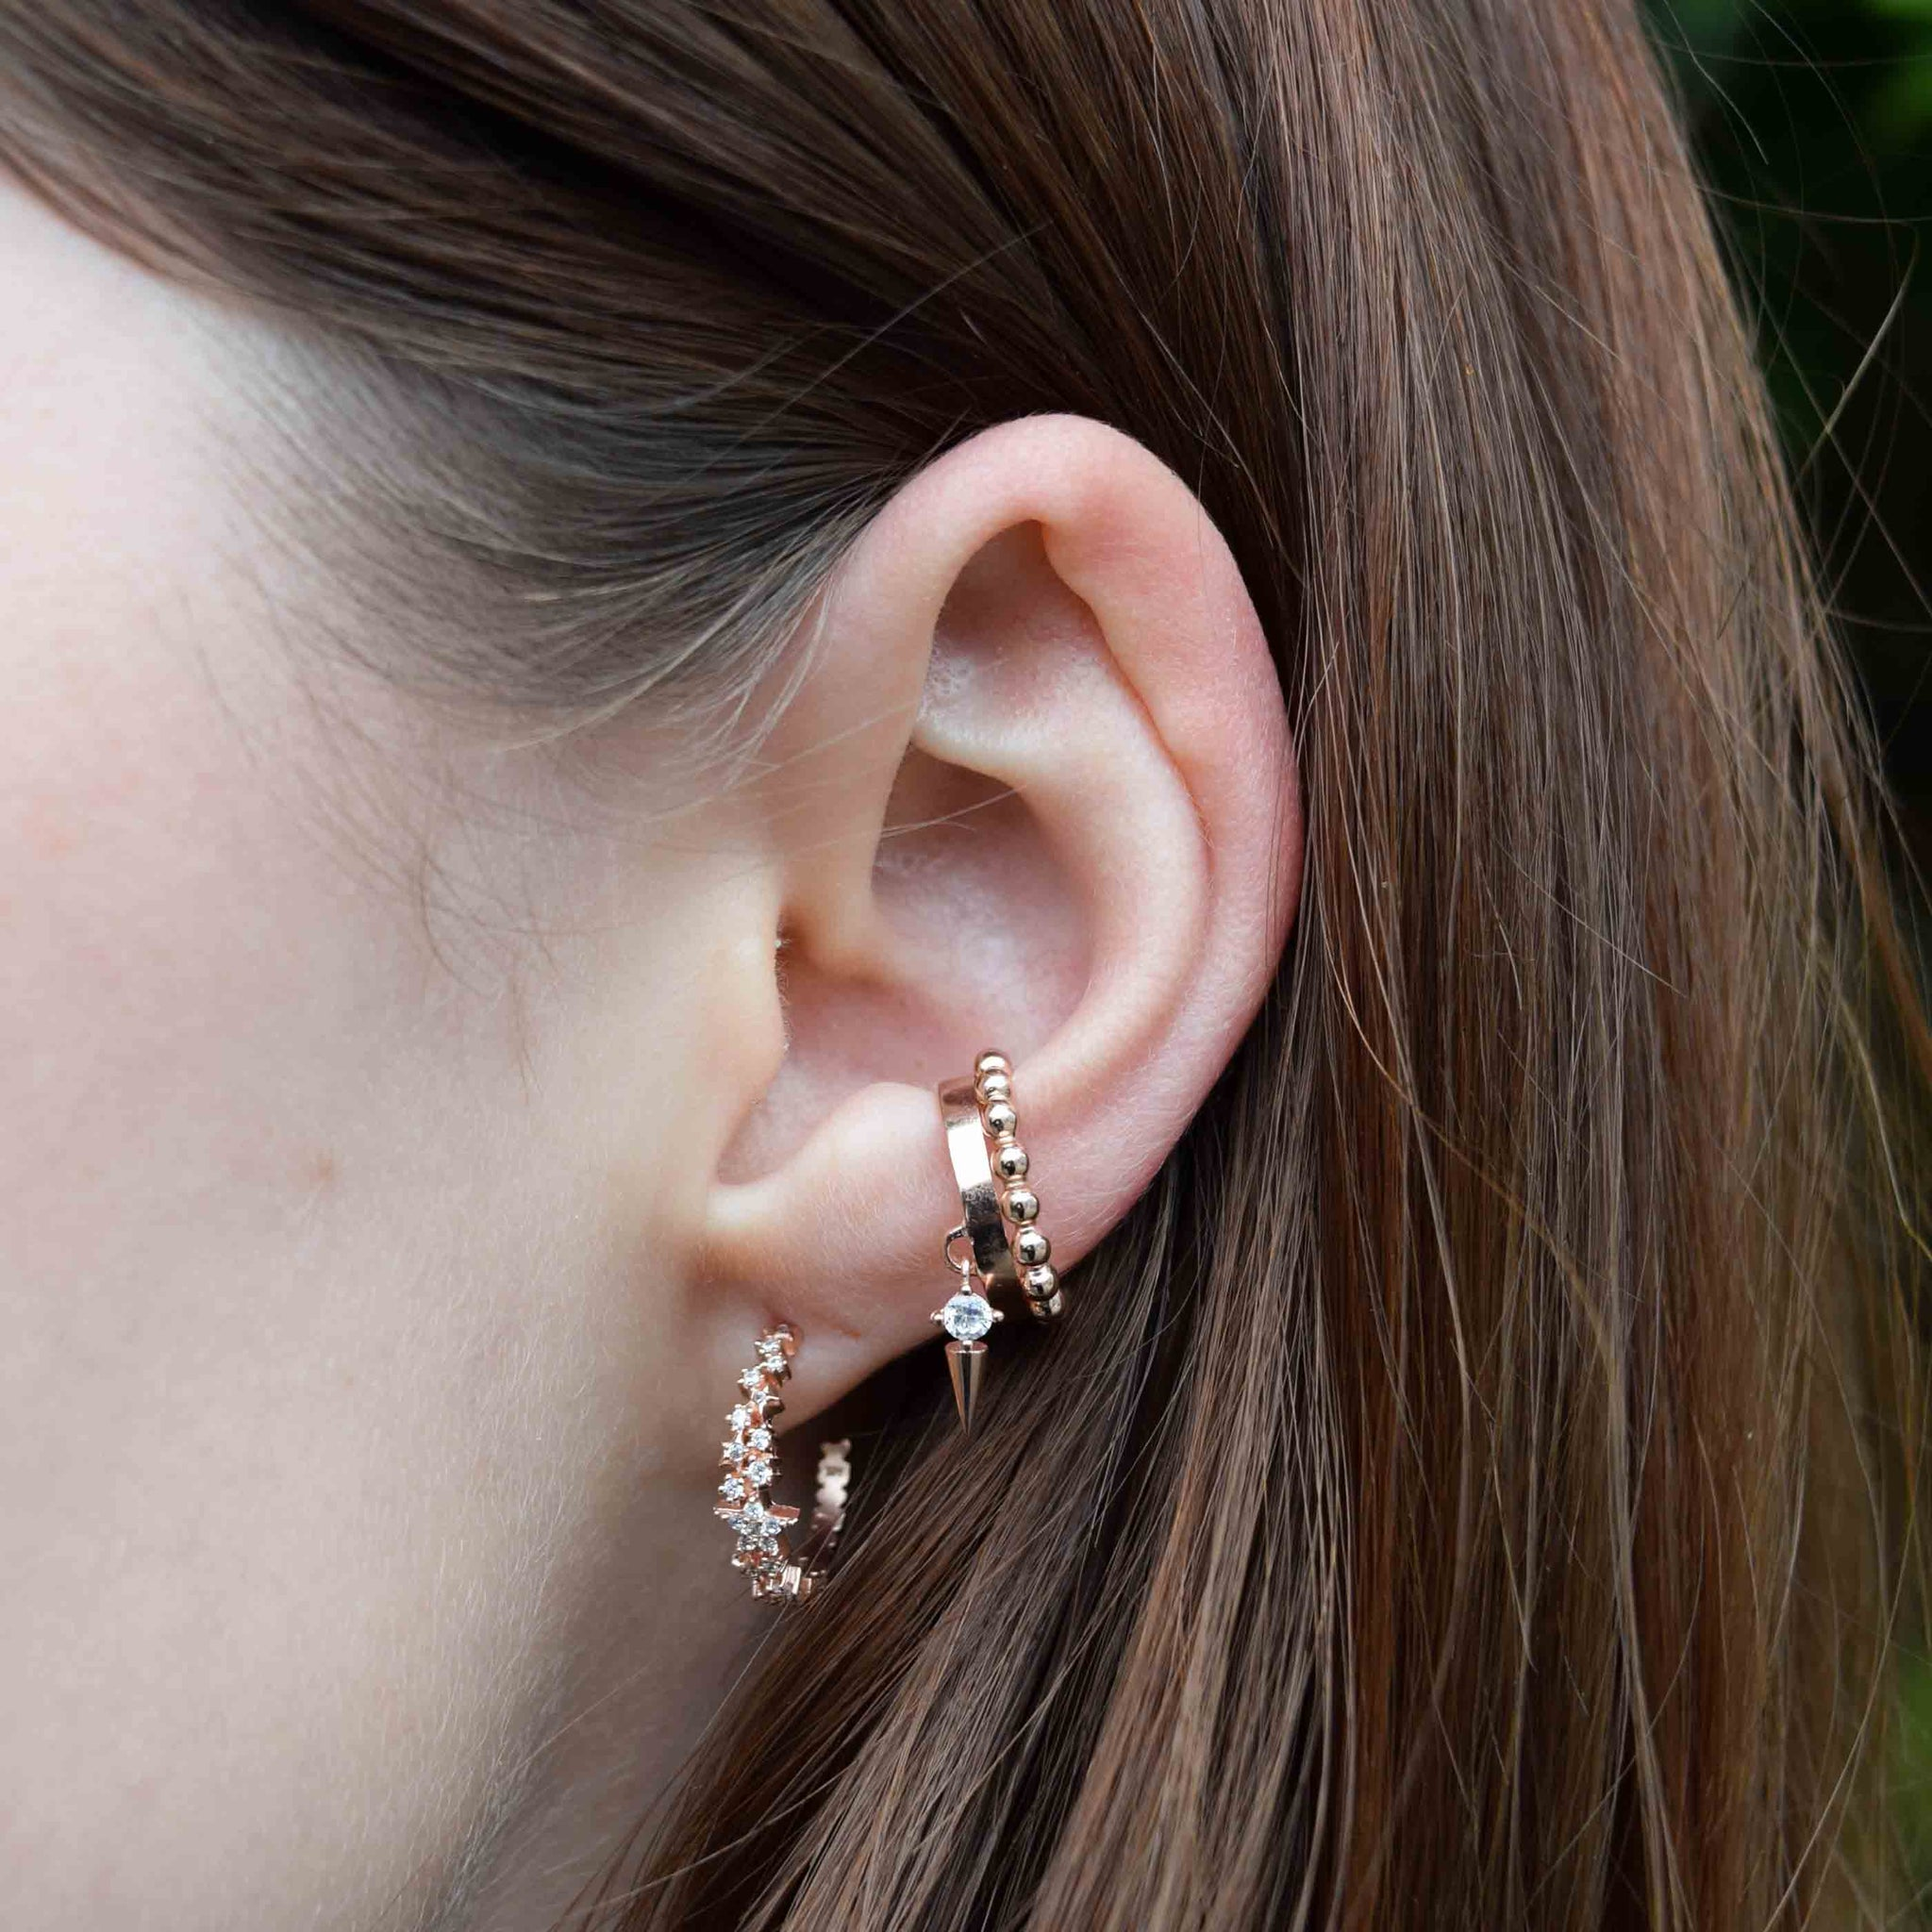 Mystic Star Hoops in Rose Gold worn with ear cuffs